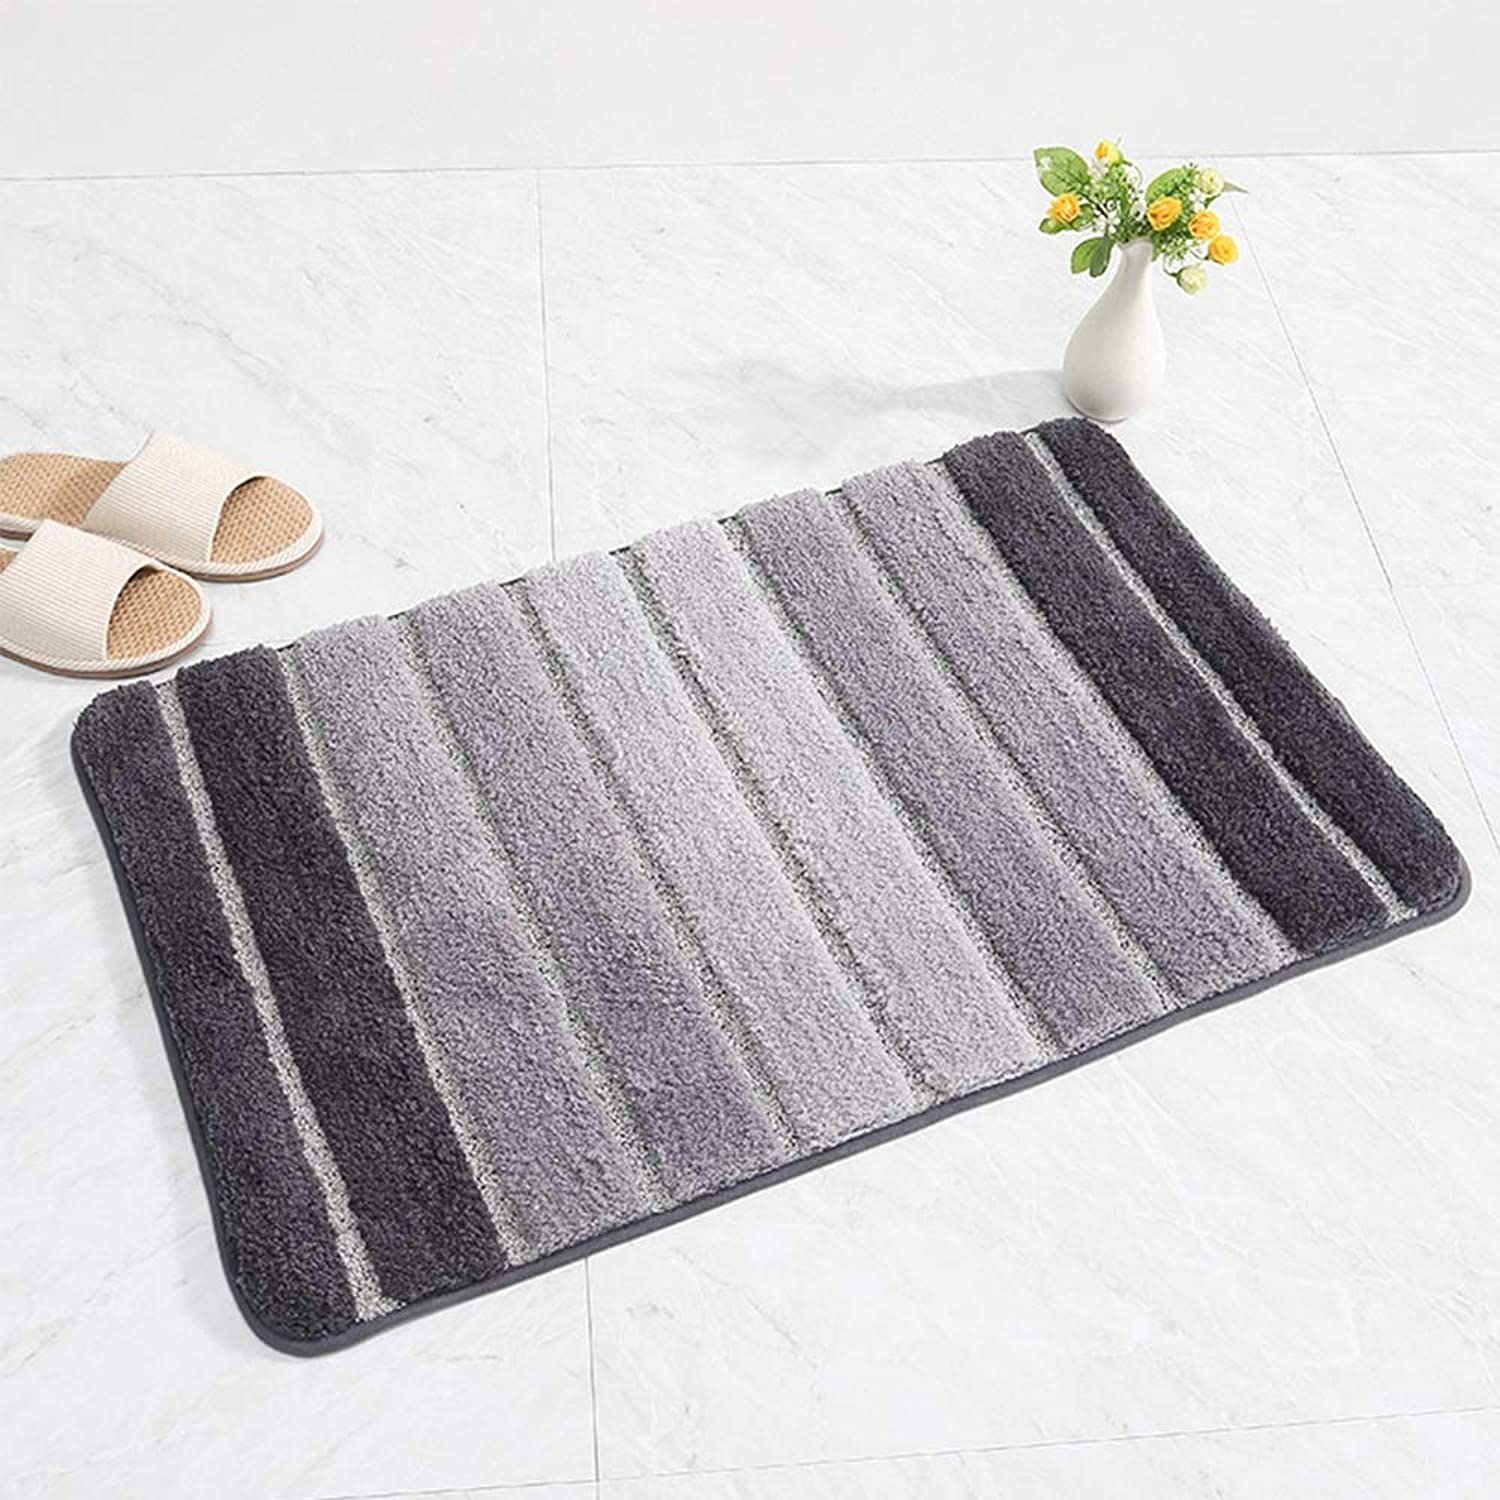 MING REN Floor Mat - Chemical Fiber, Soft And Comfortable, Thick Water Absorption, Reactive Dyes, Striped Scratch-resistant Wear-resistant Bedroom Door Bathroom Kitchen Absorbent Carpet Mat Door Mat -